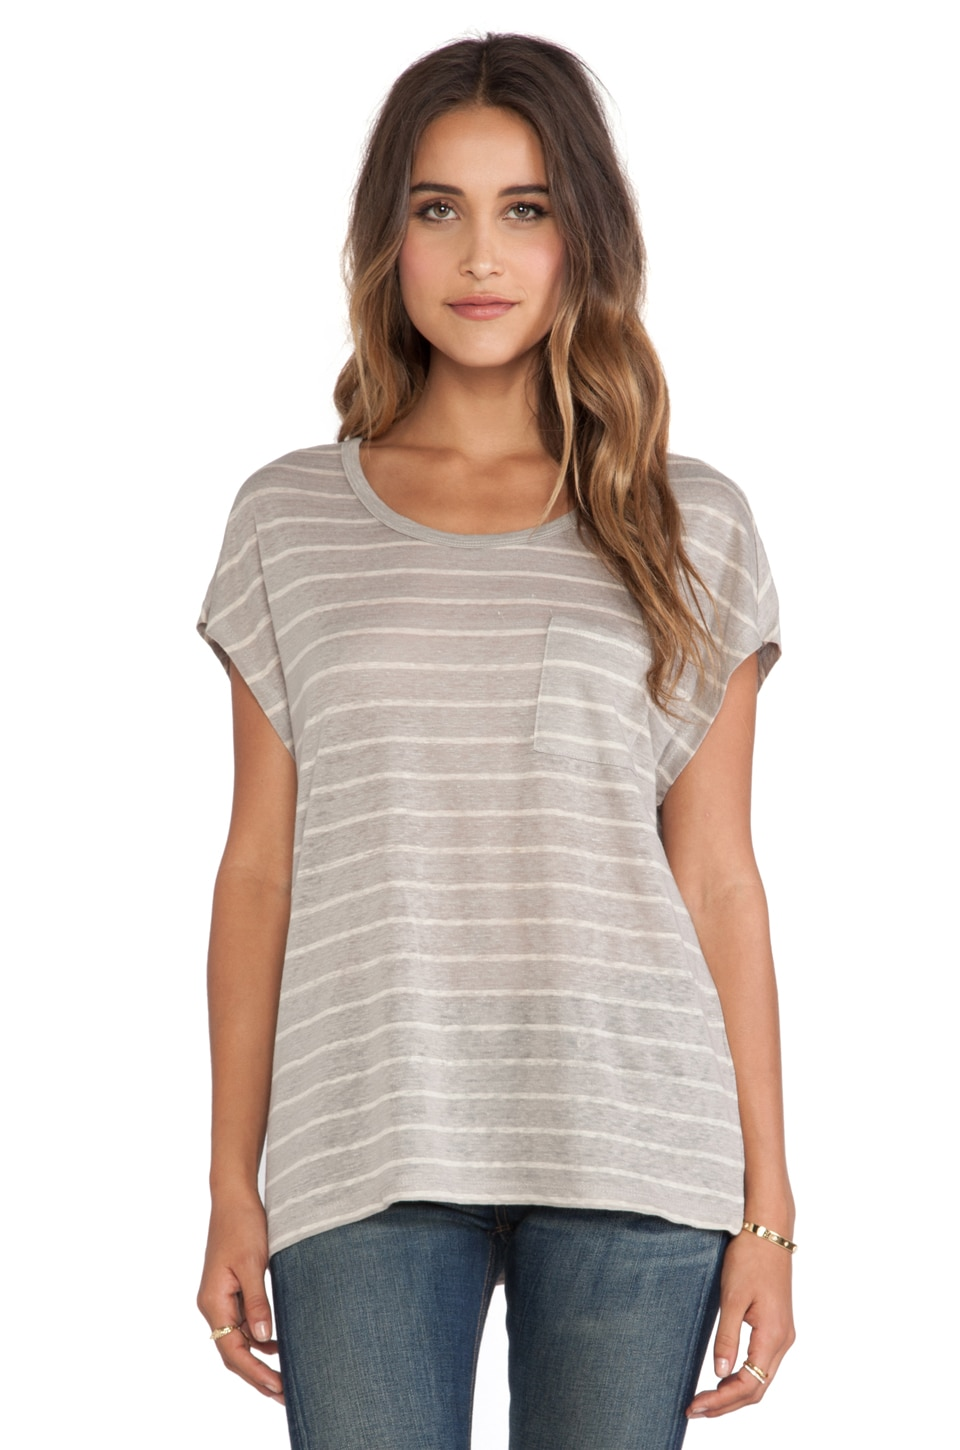 Joie Hanby Tee in Marble & Oatmeal Heather